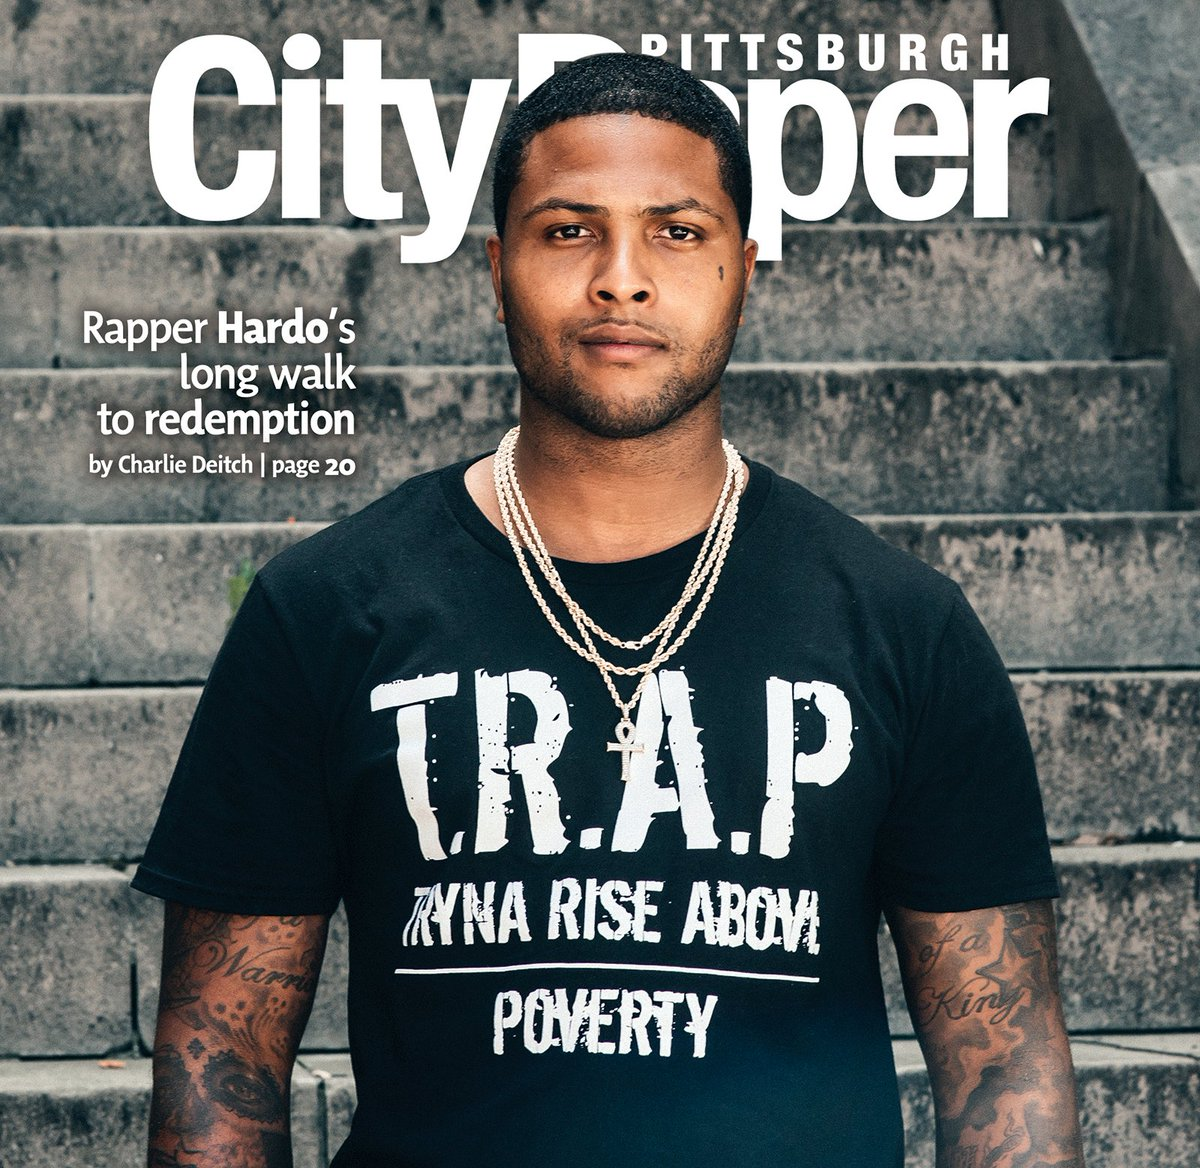 On the cover: Pittsburgh rapper @trapnhardo's long walk to redemption (photo by @huny) https://t.co/7dFUYwDPoU